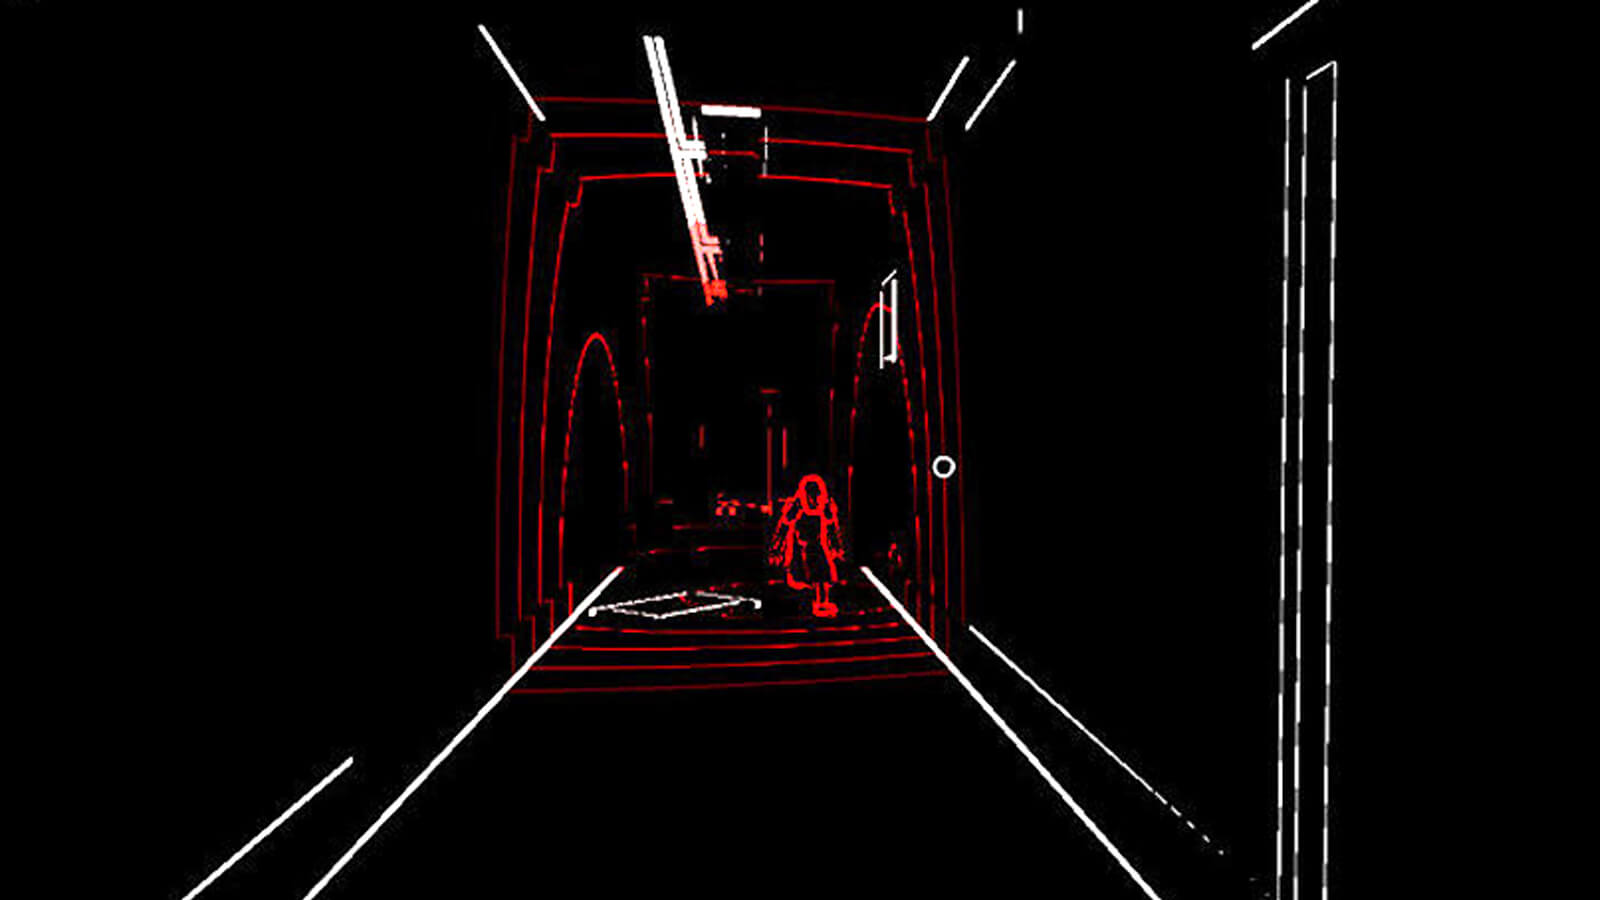 Seen in only black, red, and white relief, a crouching figure stalks the player